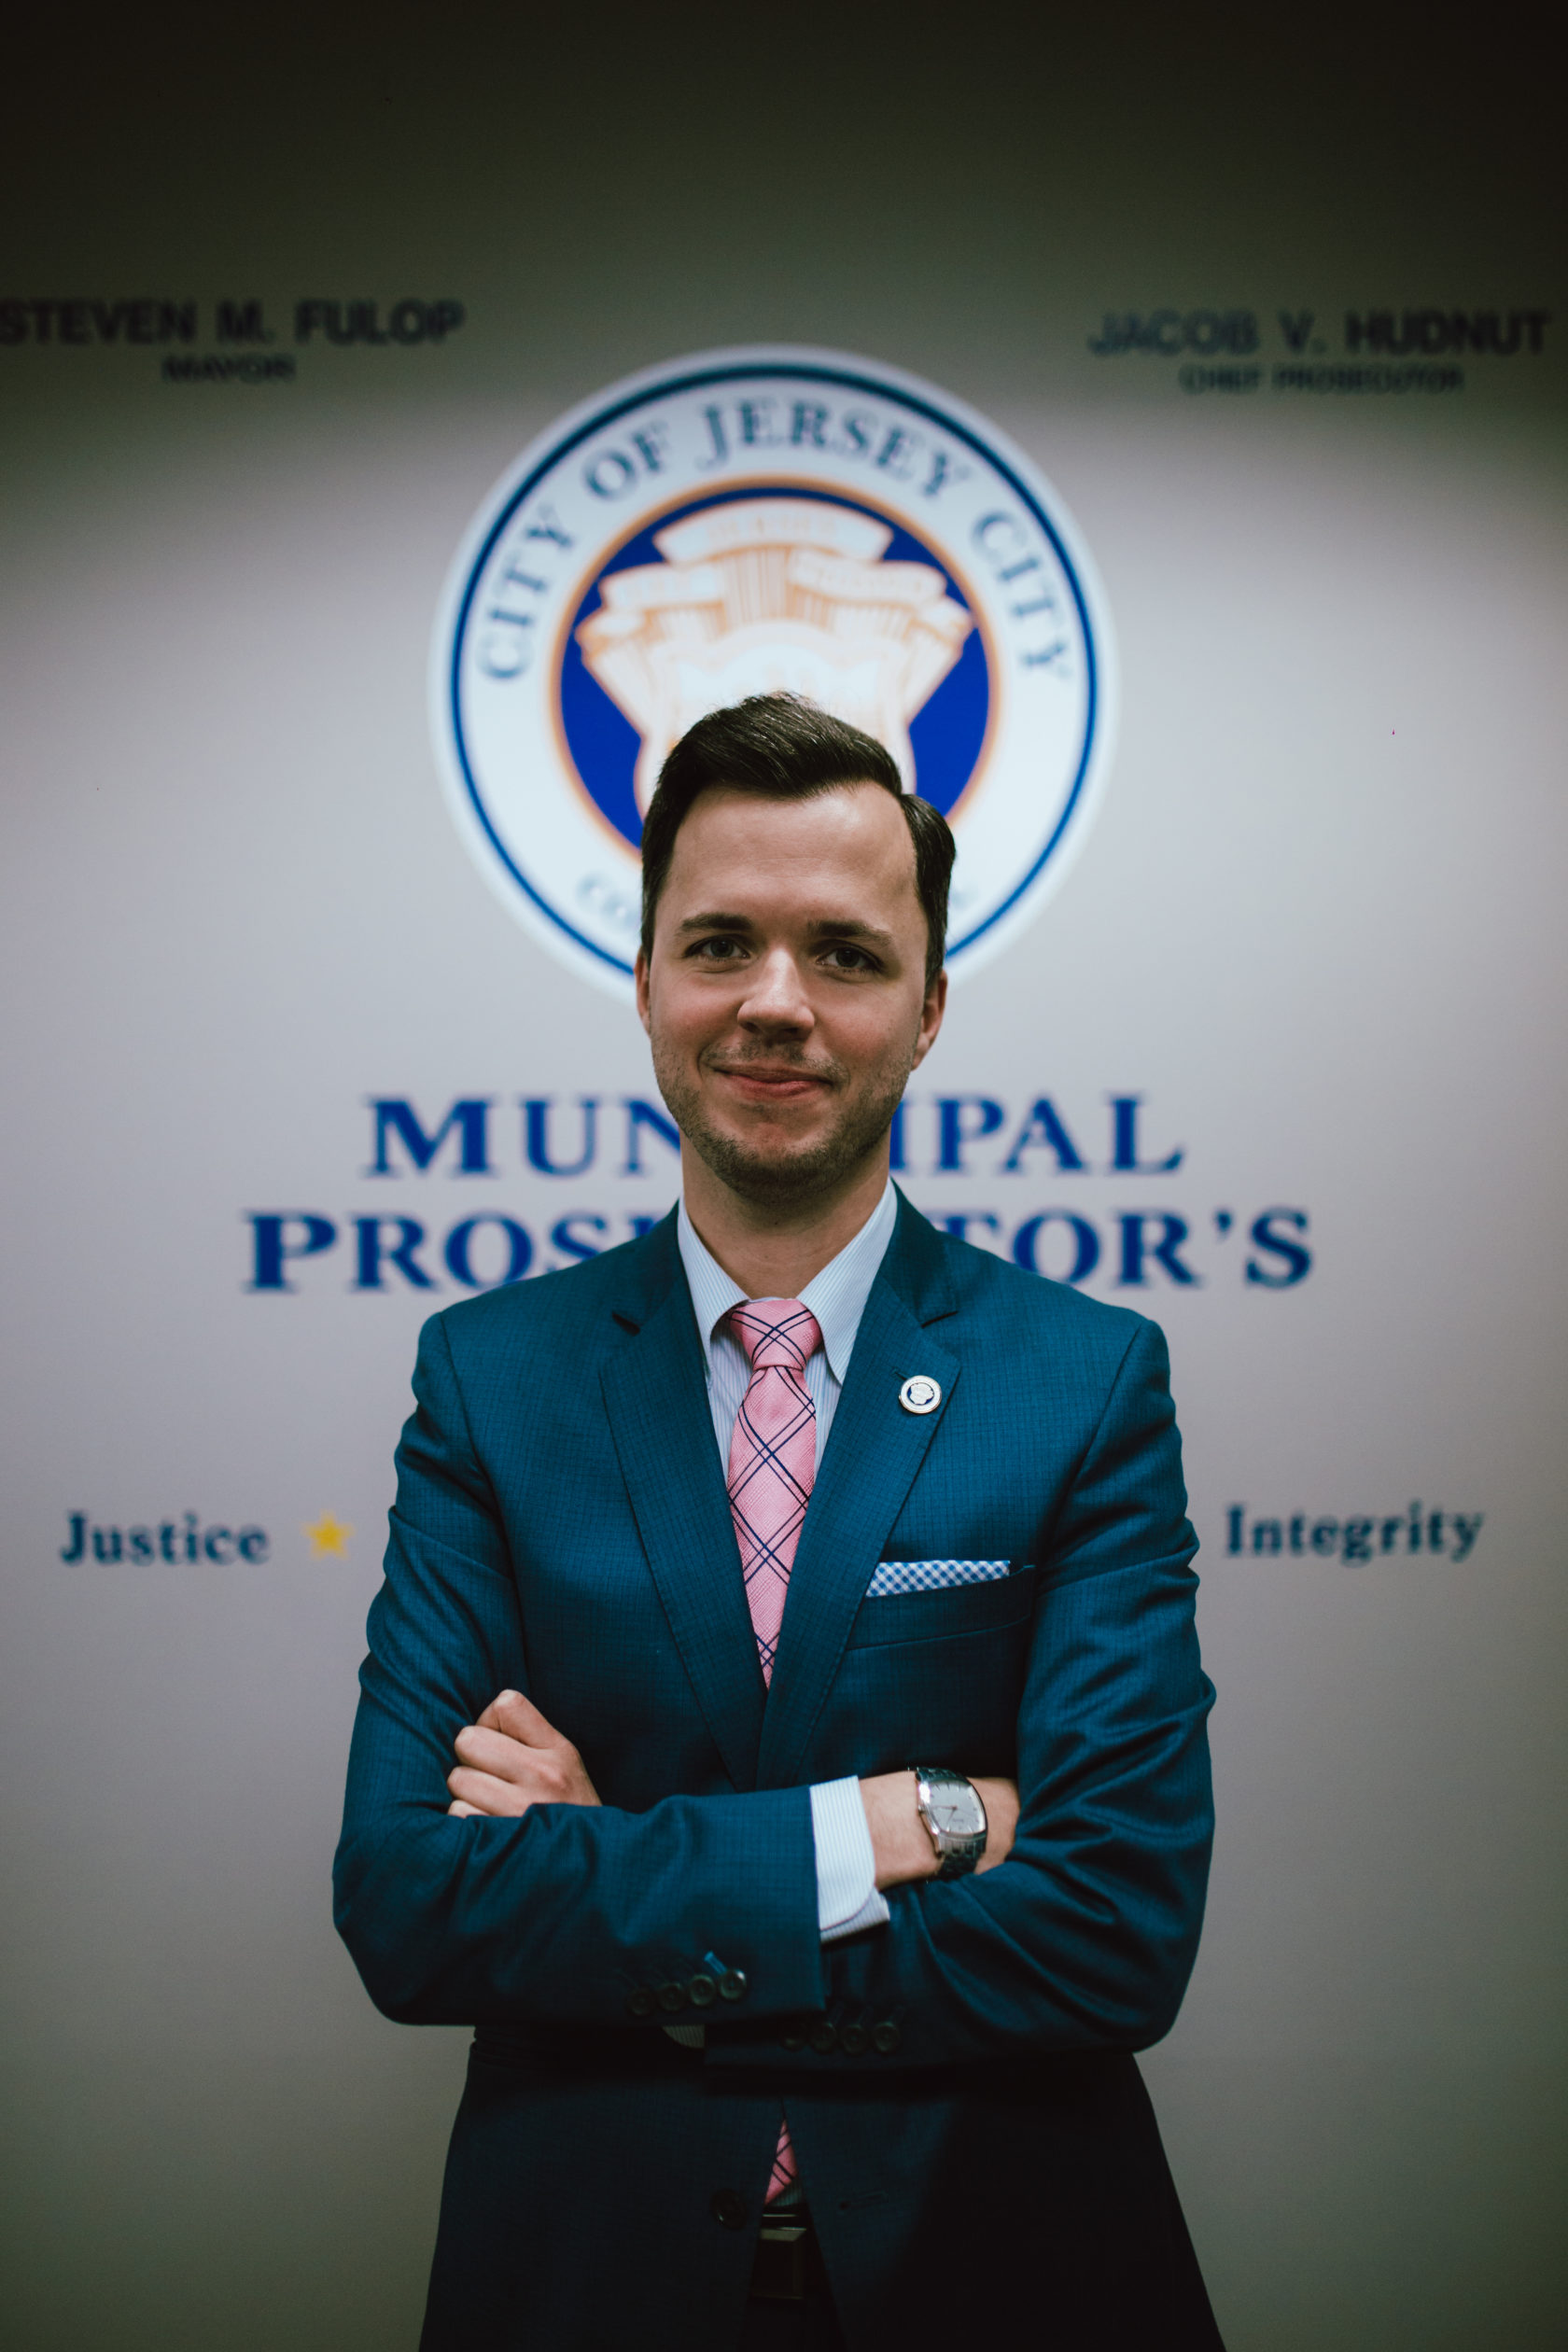 Jake Hudnut, Jersey City's Chief Prosecutor